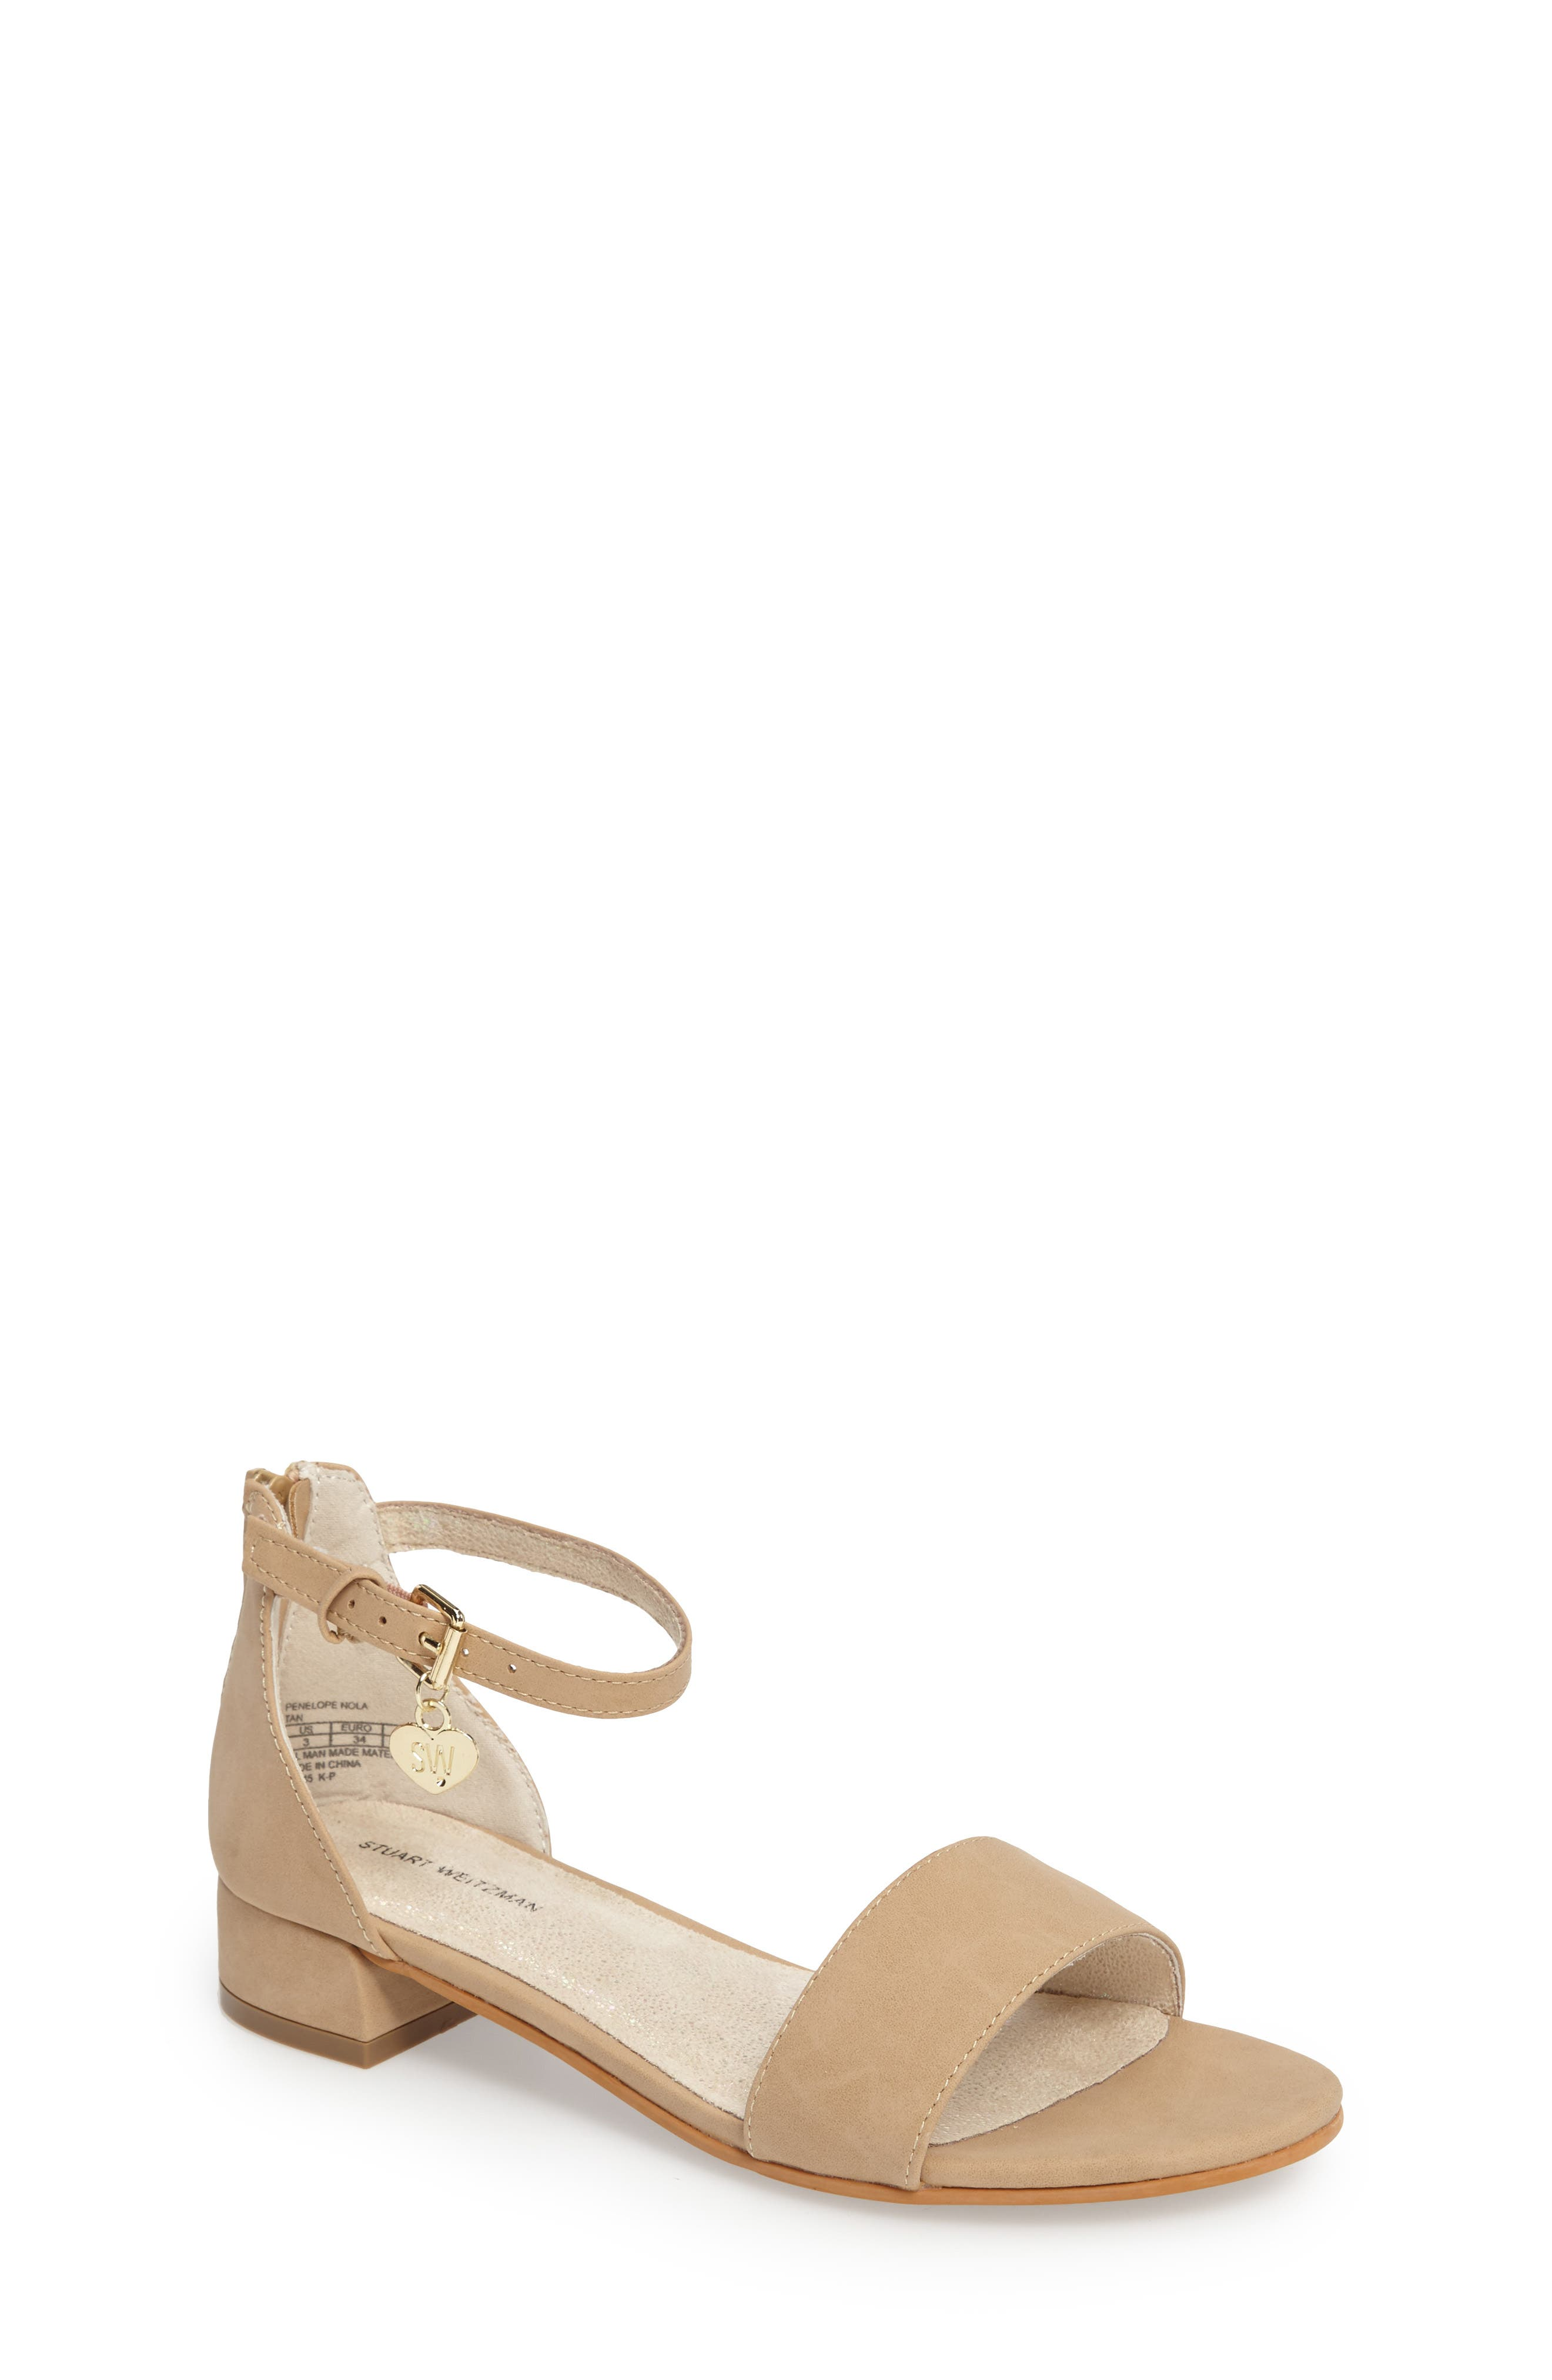 Stuart Weitzman Penelope Nola Sandal (Toddler, Little Kid & Big Kid)